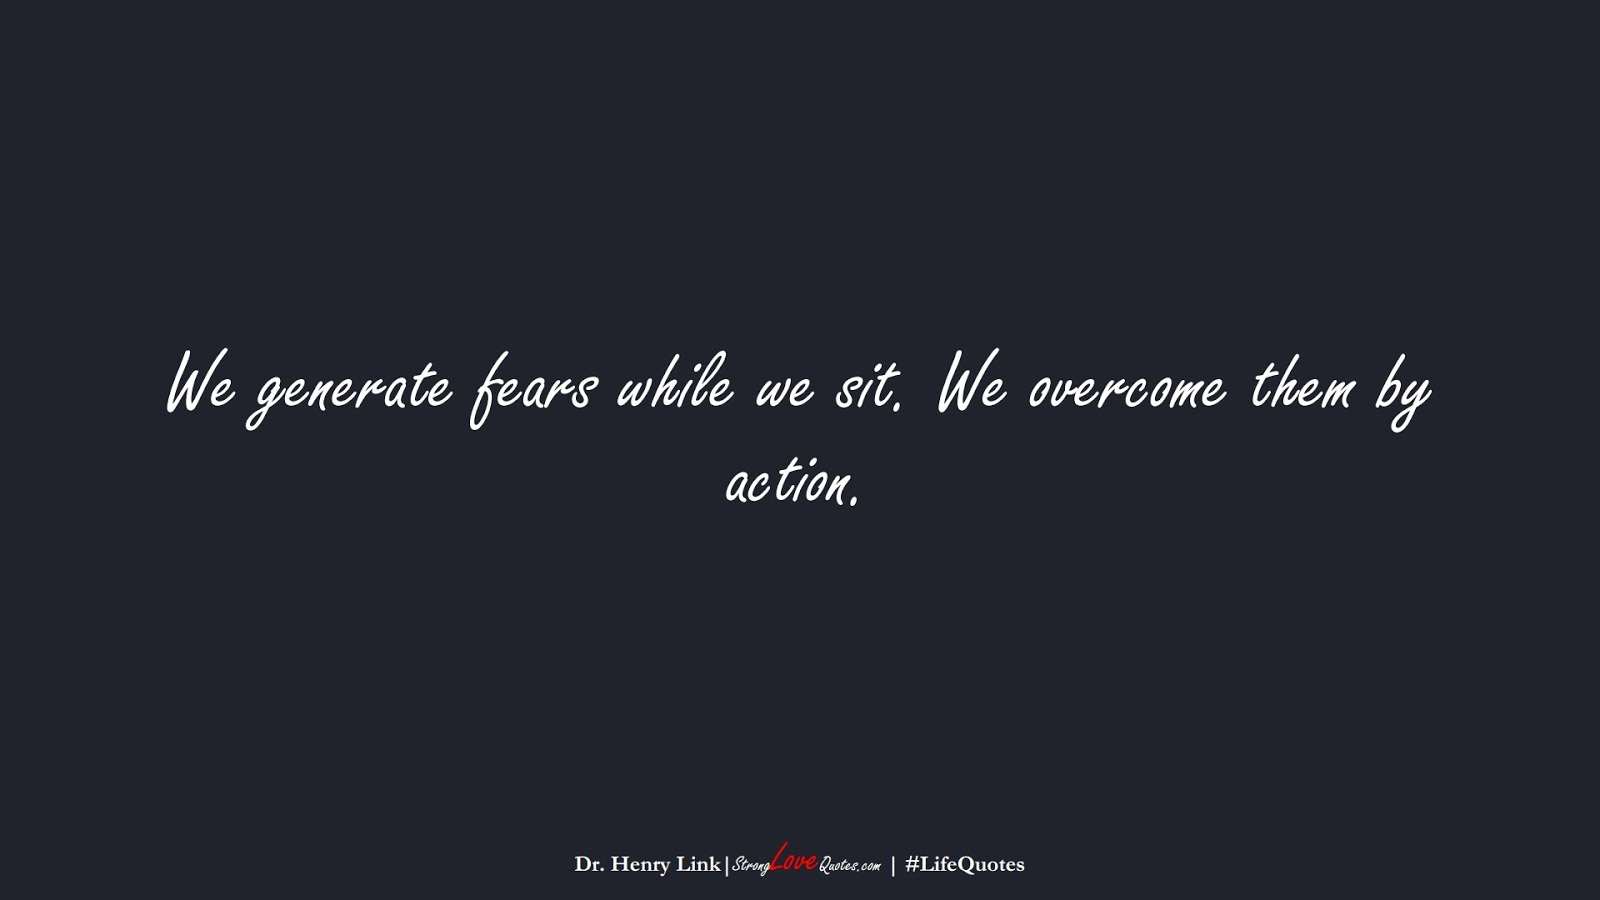 We generate fears while we sit. We overcome them by action. (Dr. Henry Link);  #LifeQuotes